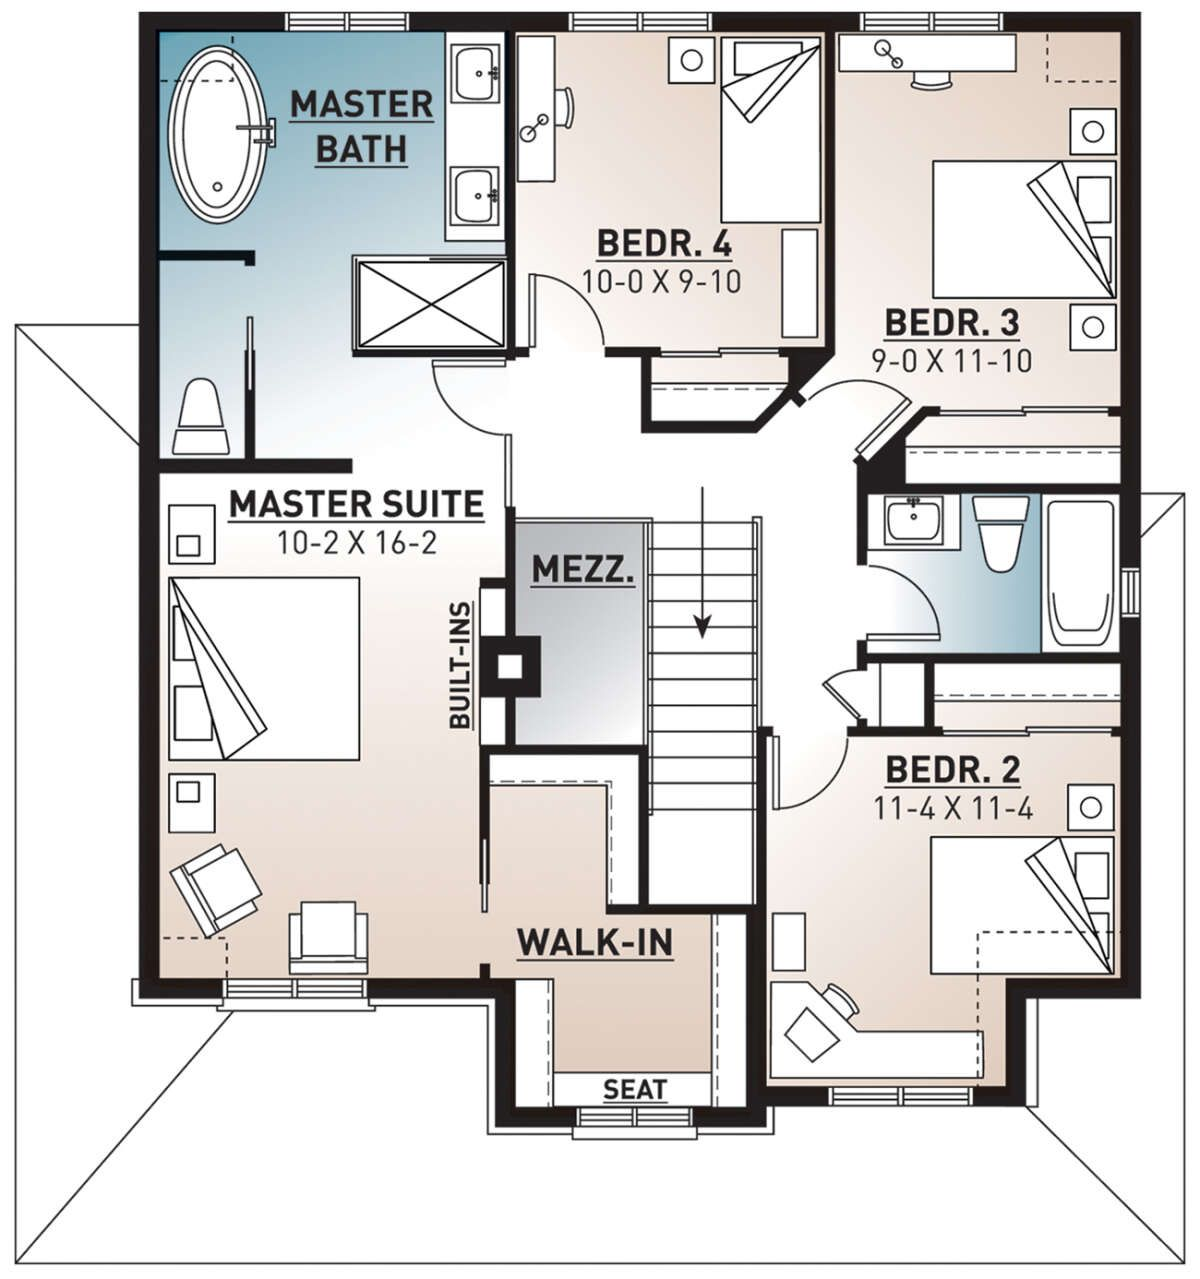 House Plan 034 00938 Narrow Lot Plan 1 935 Square Feet 4 Bedrooms 2 5 Bathrooms In 2021 Farmhouse Style House Plans Master Suite Floor Plan Bedroom Floor Plans